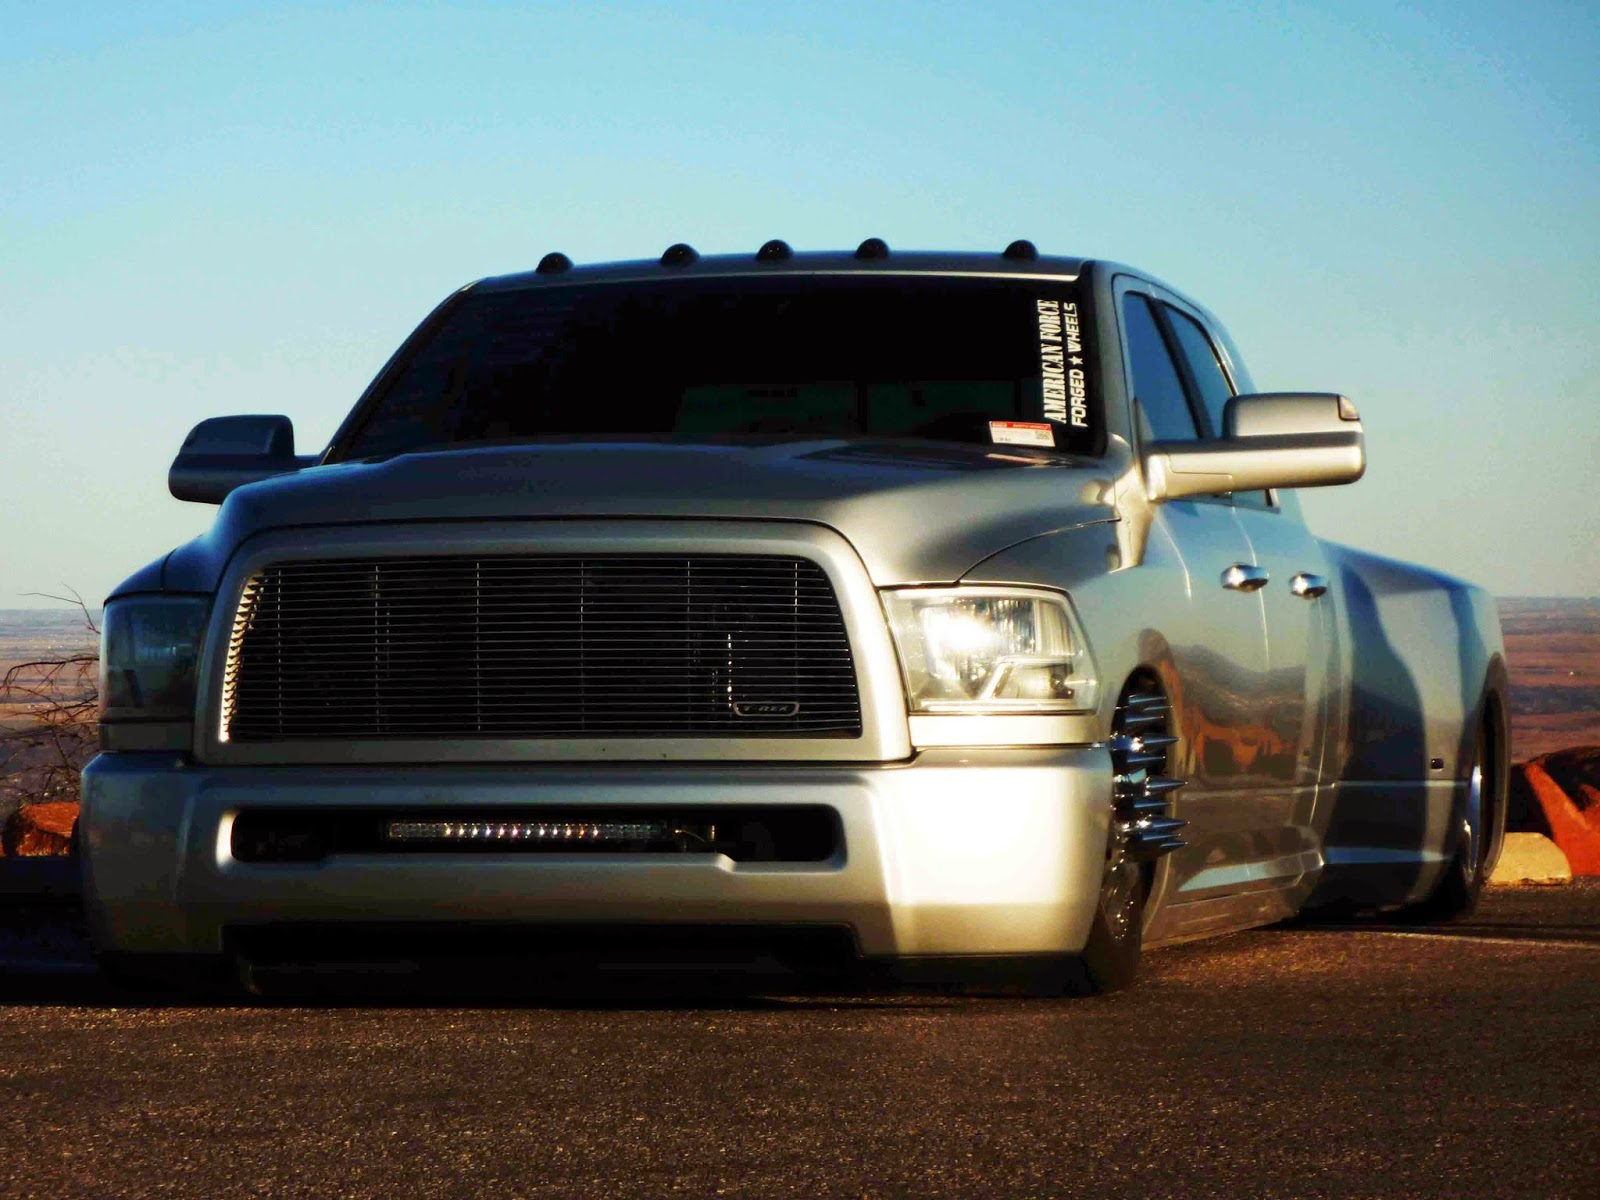 Amsoil Severe Gear 75w 90 >> AMSOIL Update: Another Day, Another AMSOIL-Lubed SEMA Project Magazine Feature